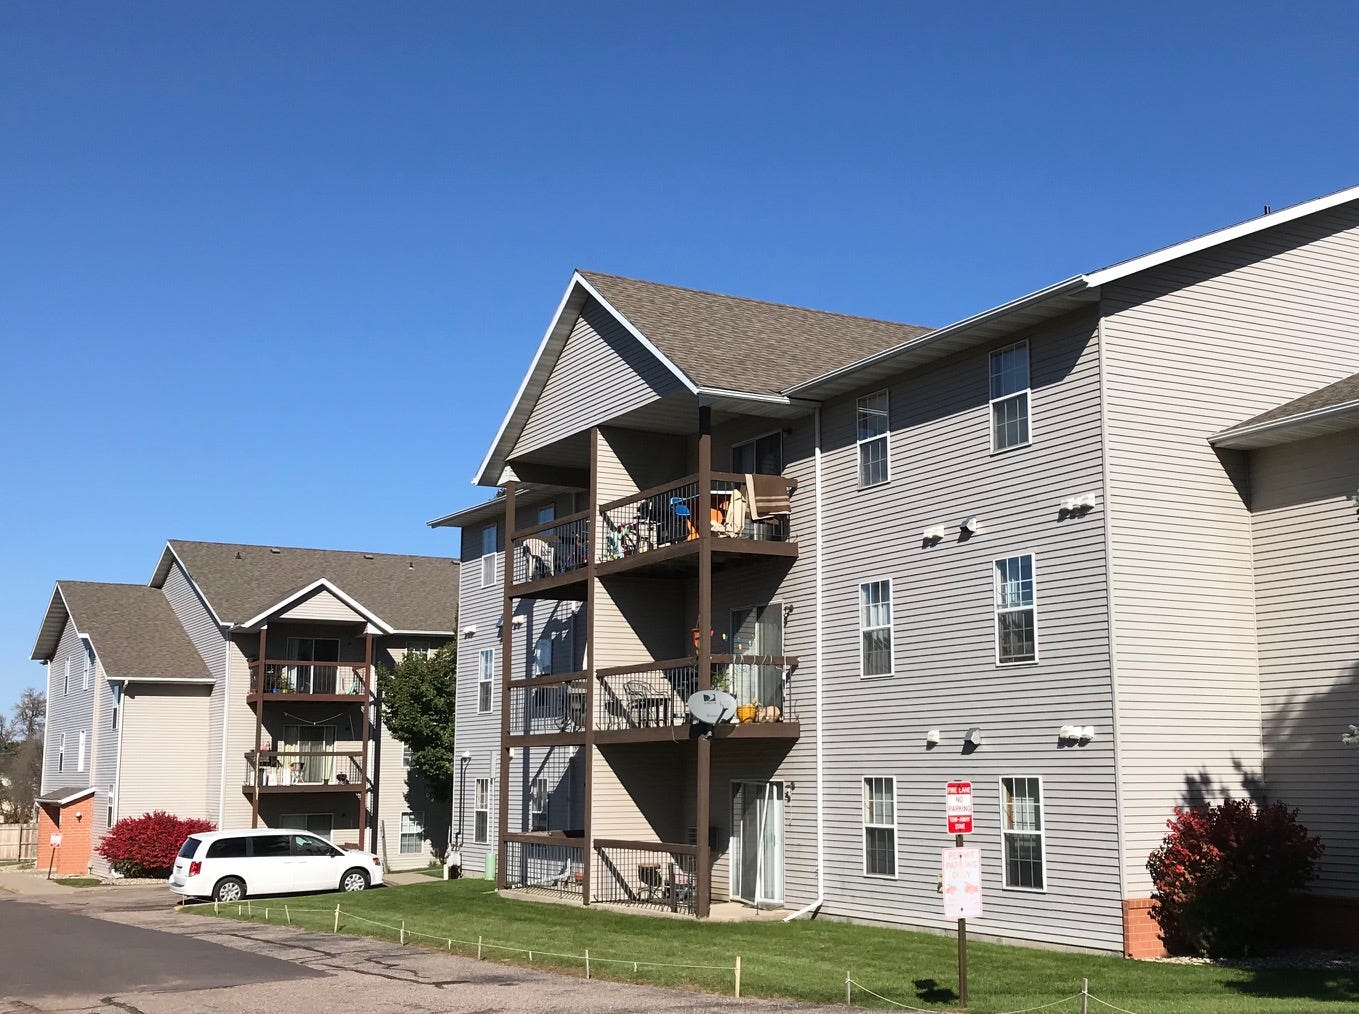 The Sycamore Courts apartments, located in the 4500 block of East 16th Street in Sioux Falls, acquired by Miami-based Tzadik Management.